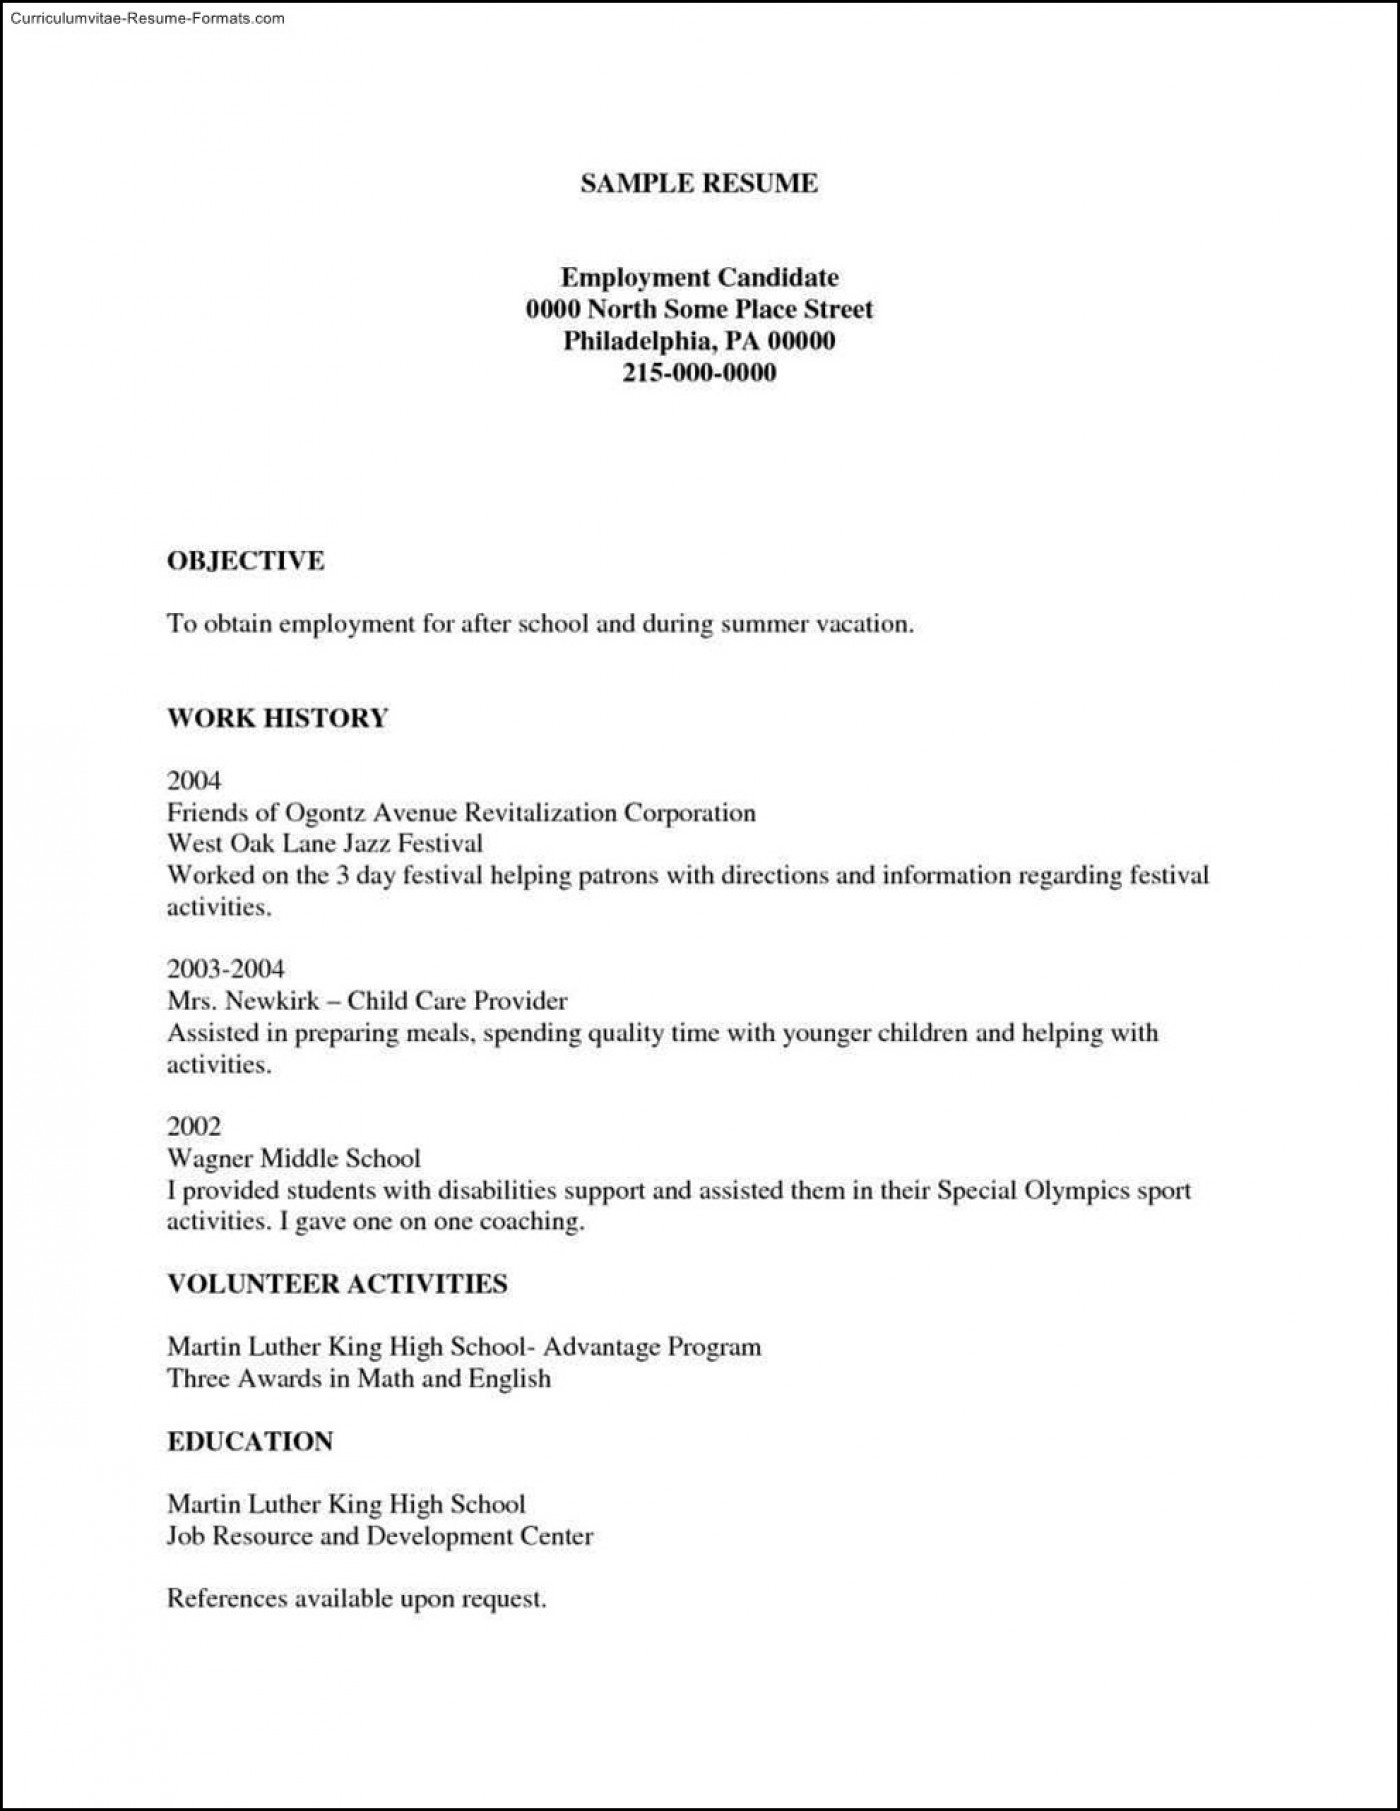 019 Templates Free Printable Basic Resume Template On Tips Ideas - Free Printable Resume Templates